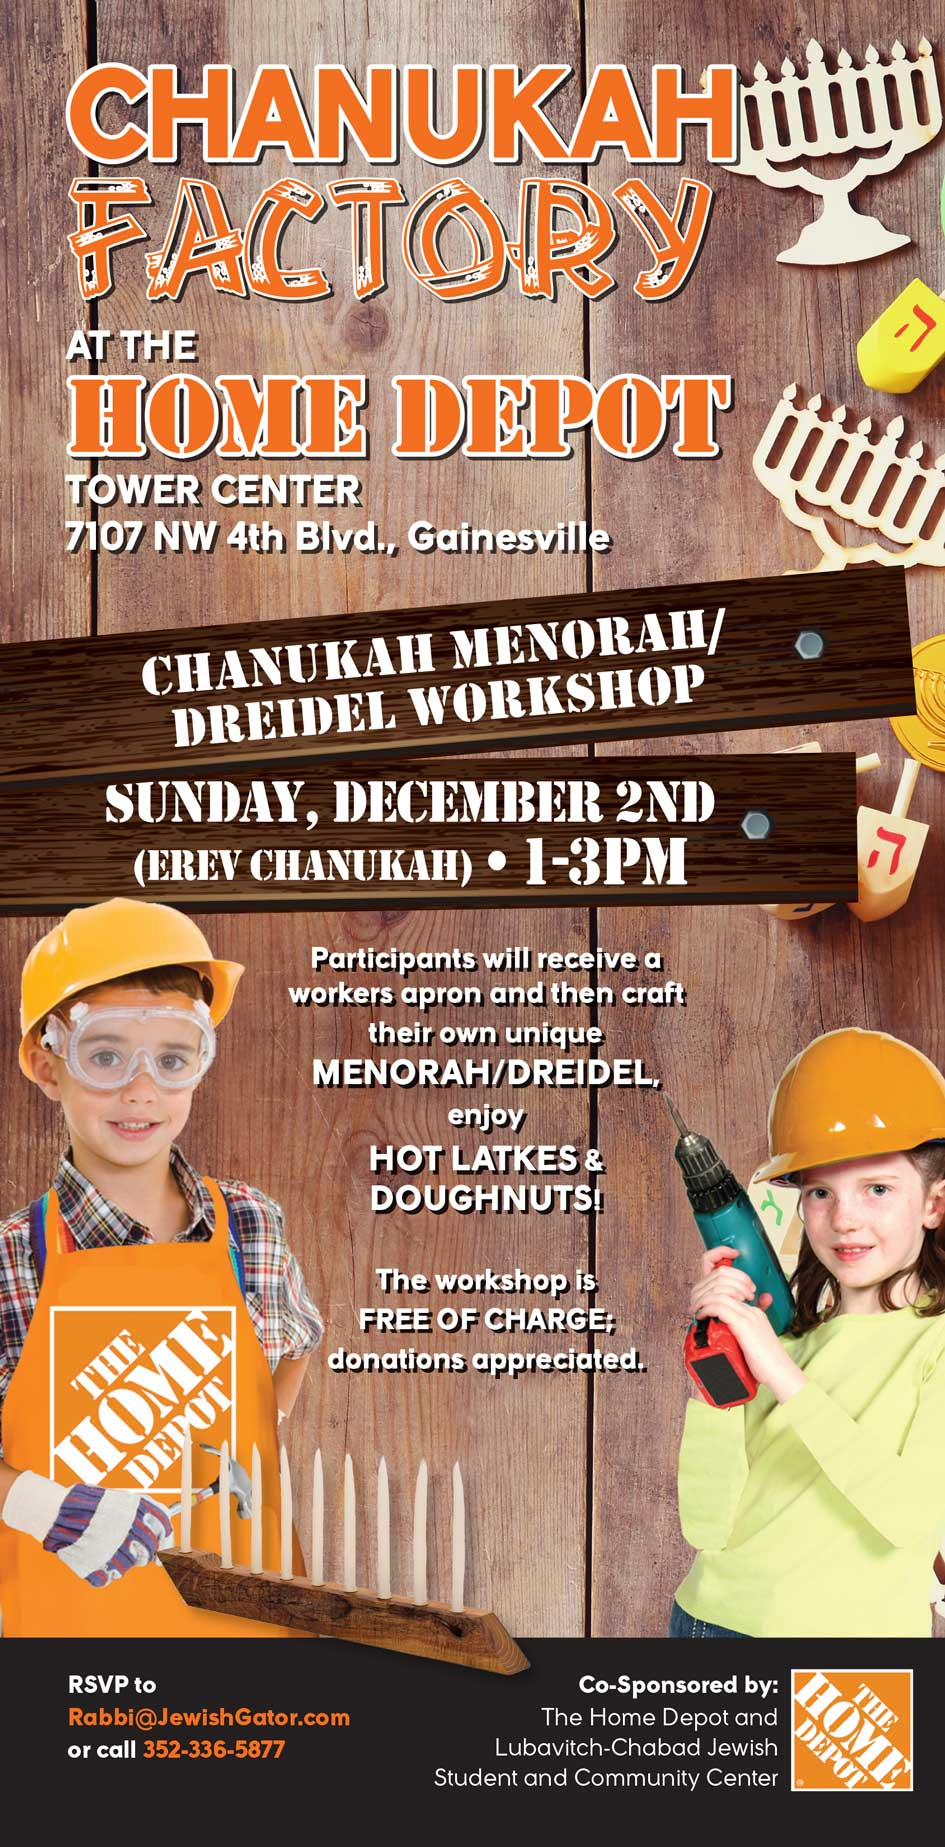 chanukah_home-depot.jpg